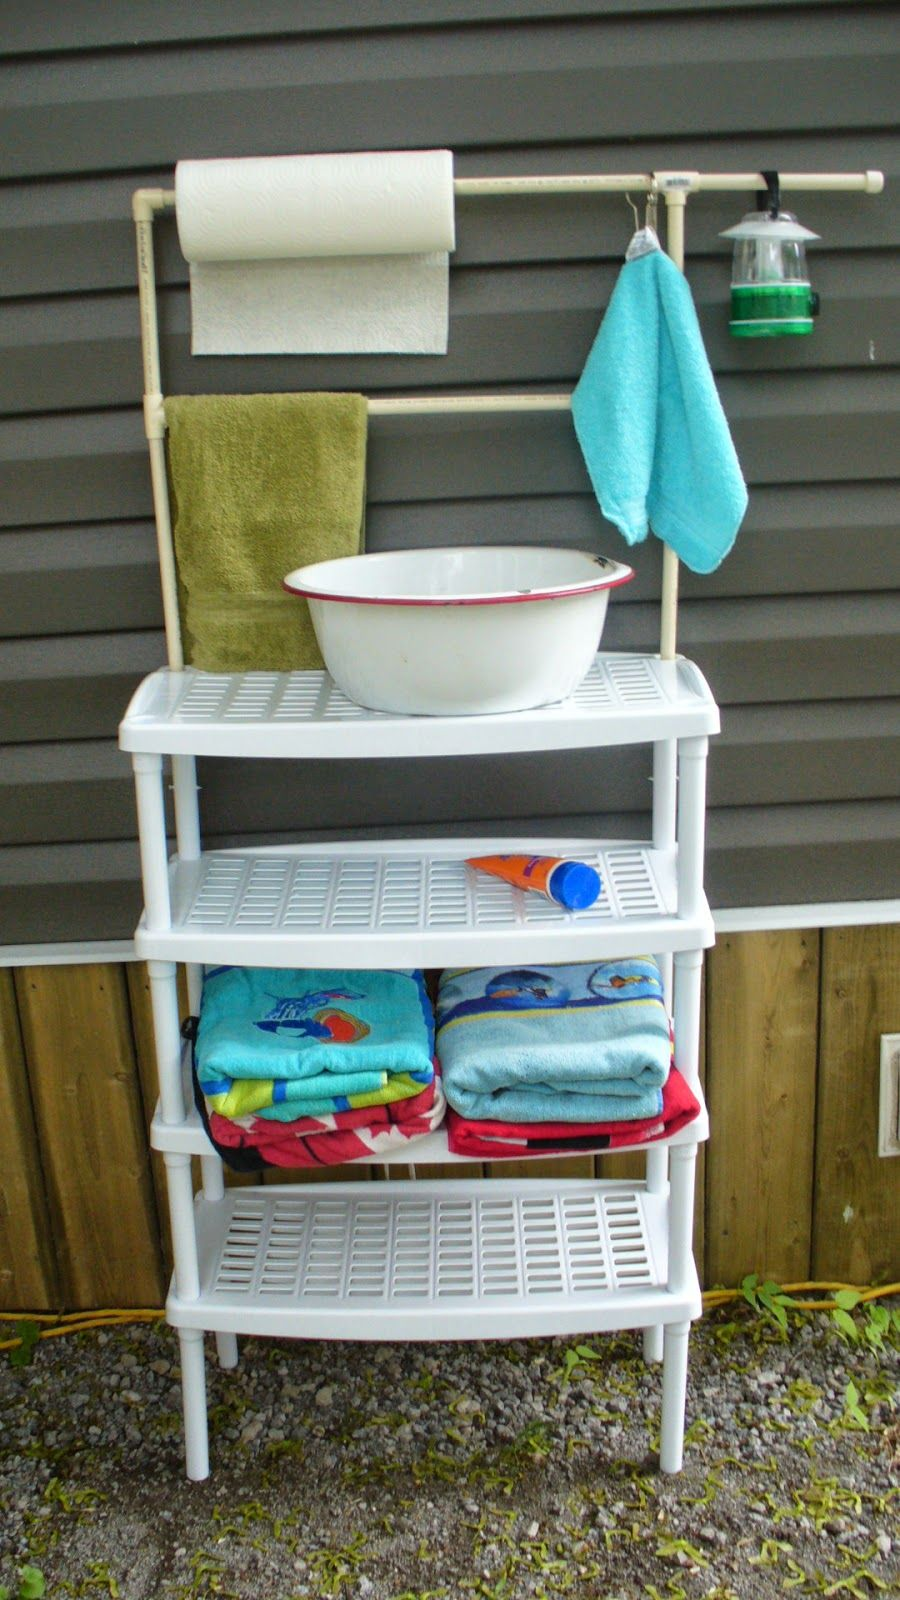 Campy Canadians: Outdoor Camping Wash Stand -- Those shelves are a ...